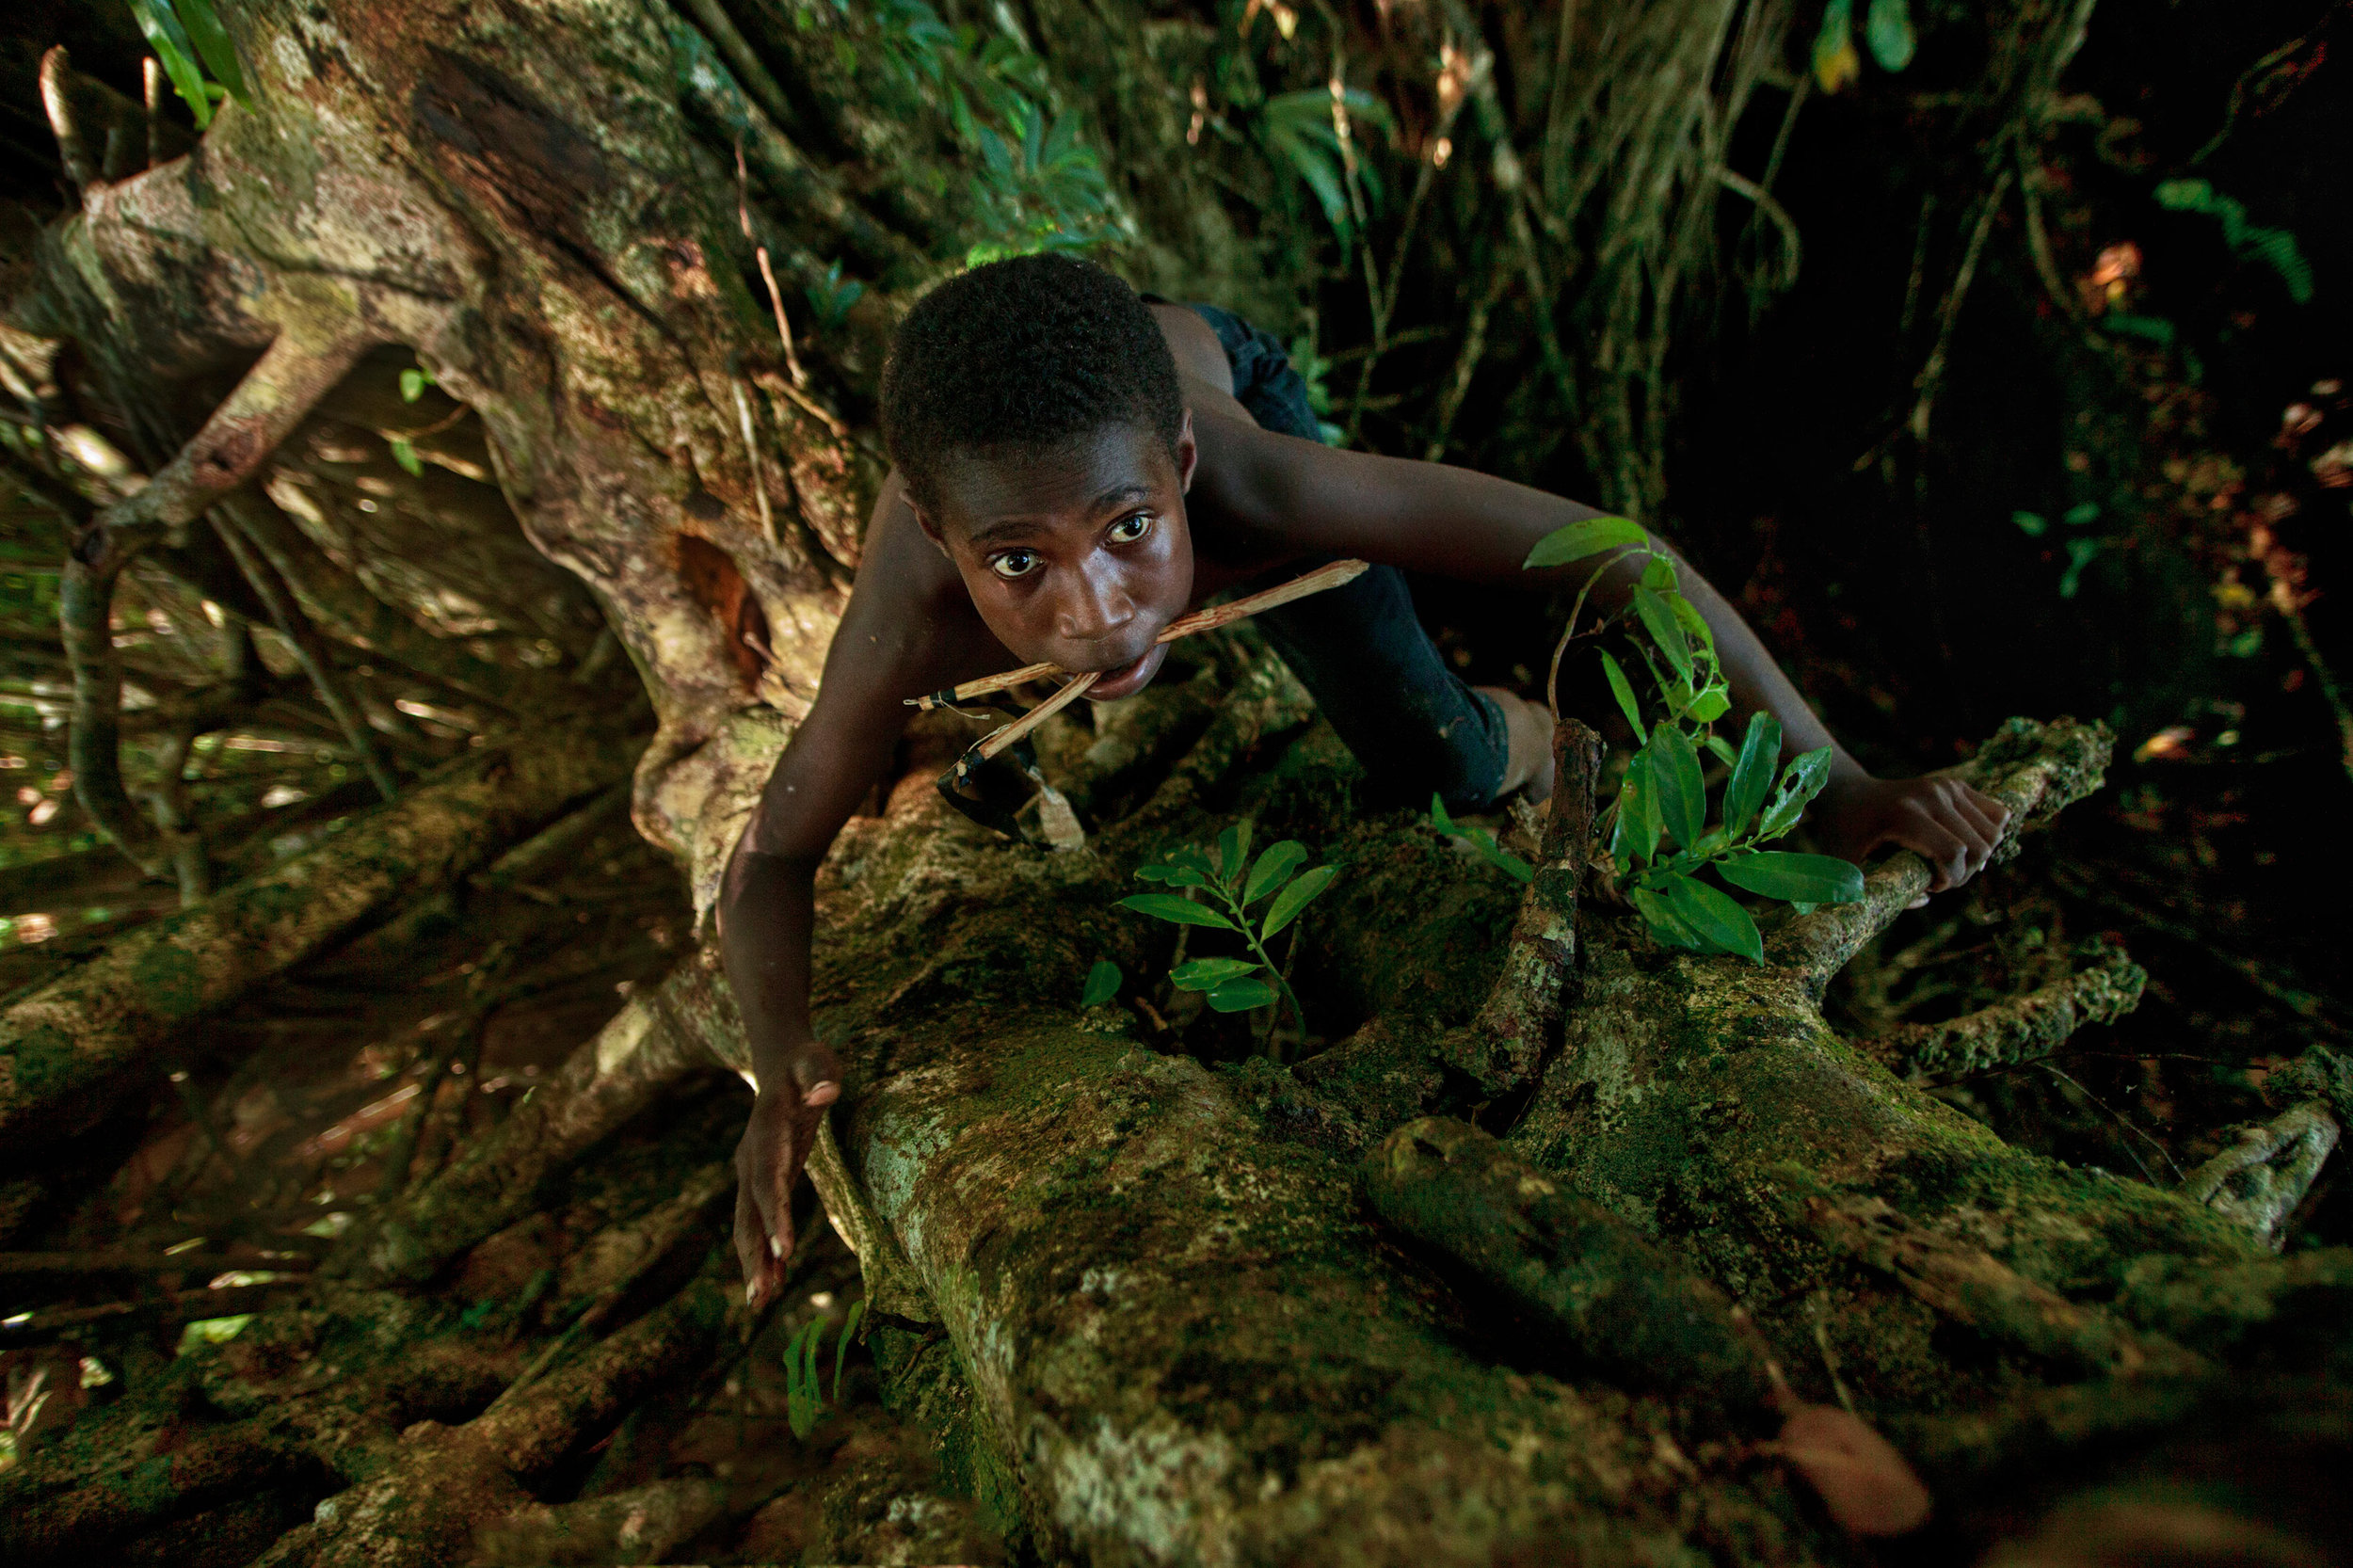 Teenage-Ni-Vanuatu-boy-climbing-a-banyan-tree---view-from-above.jpg